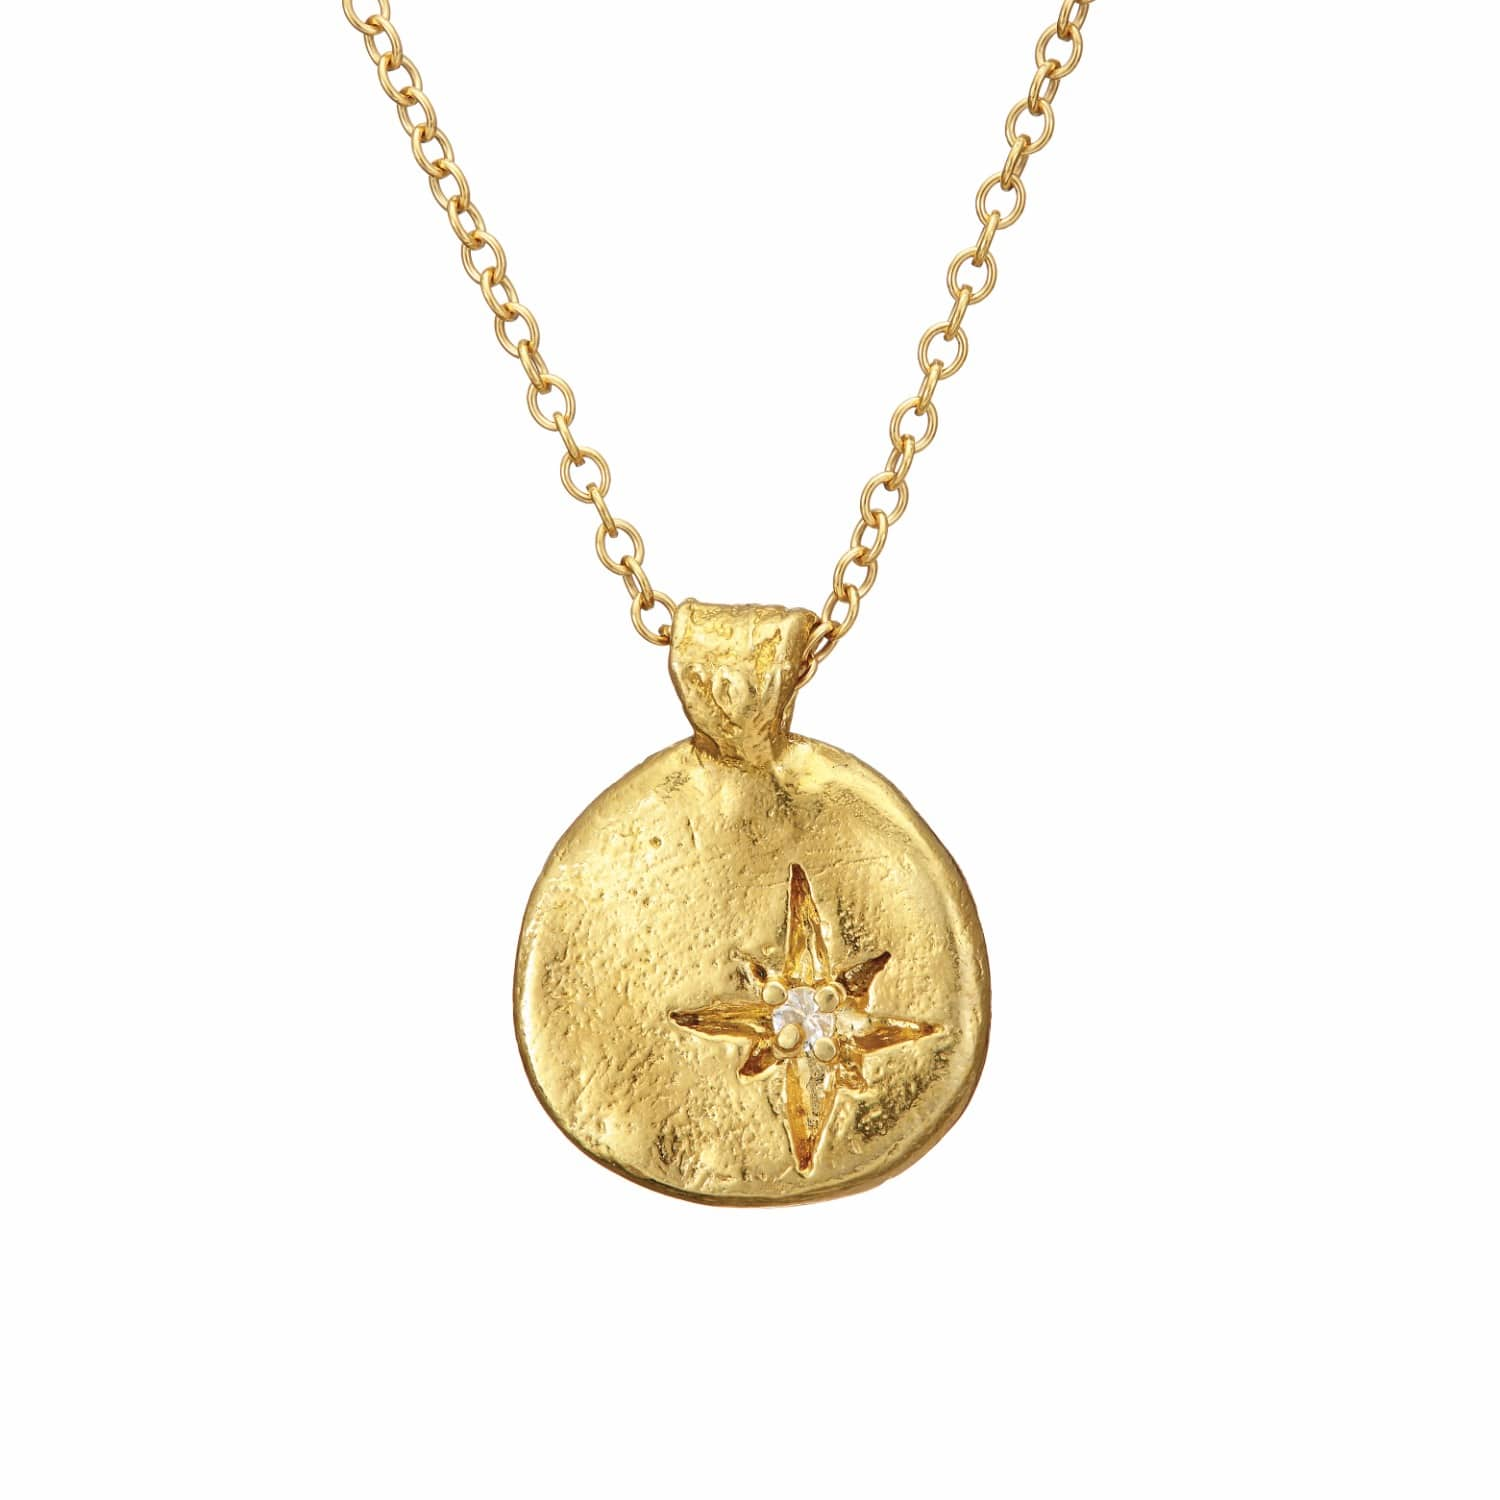 shop north contemporary buy star juvi gold jewellery pendant irish online